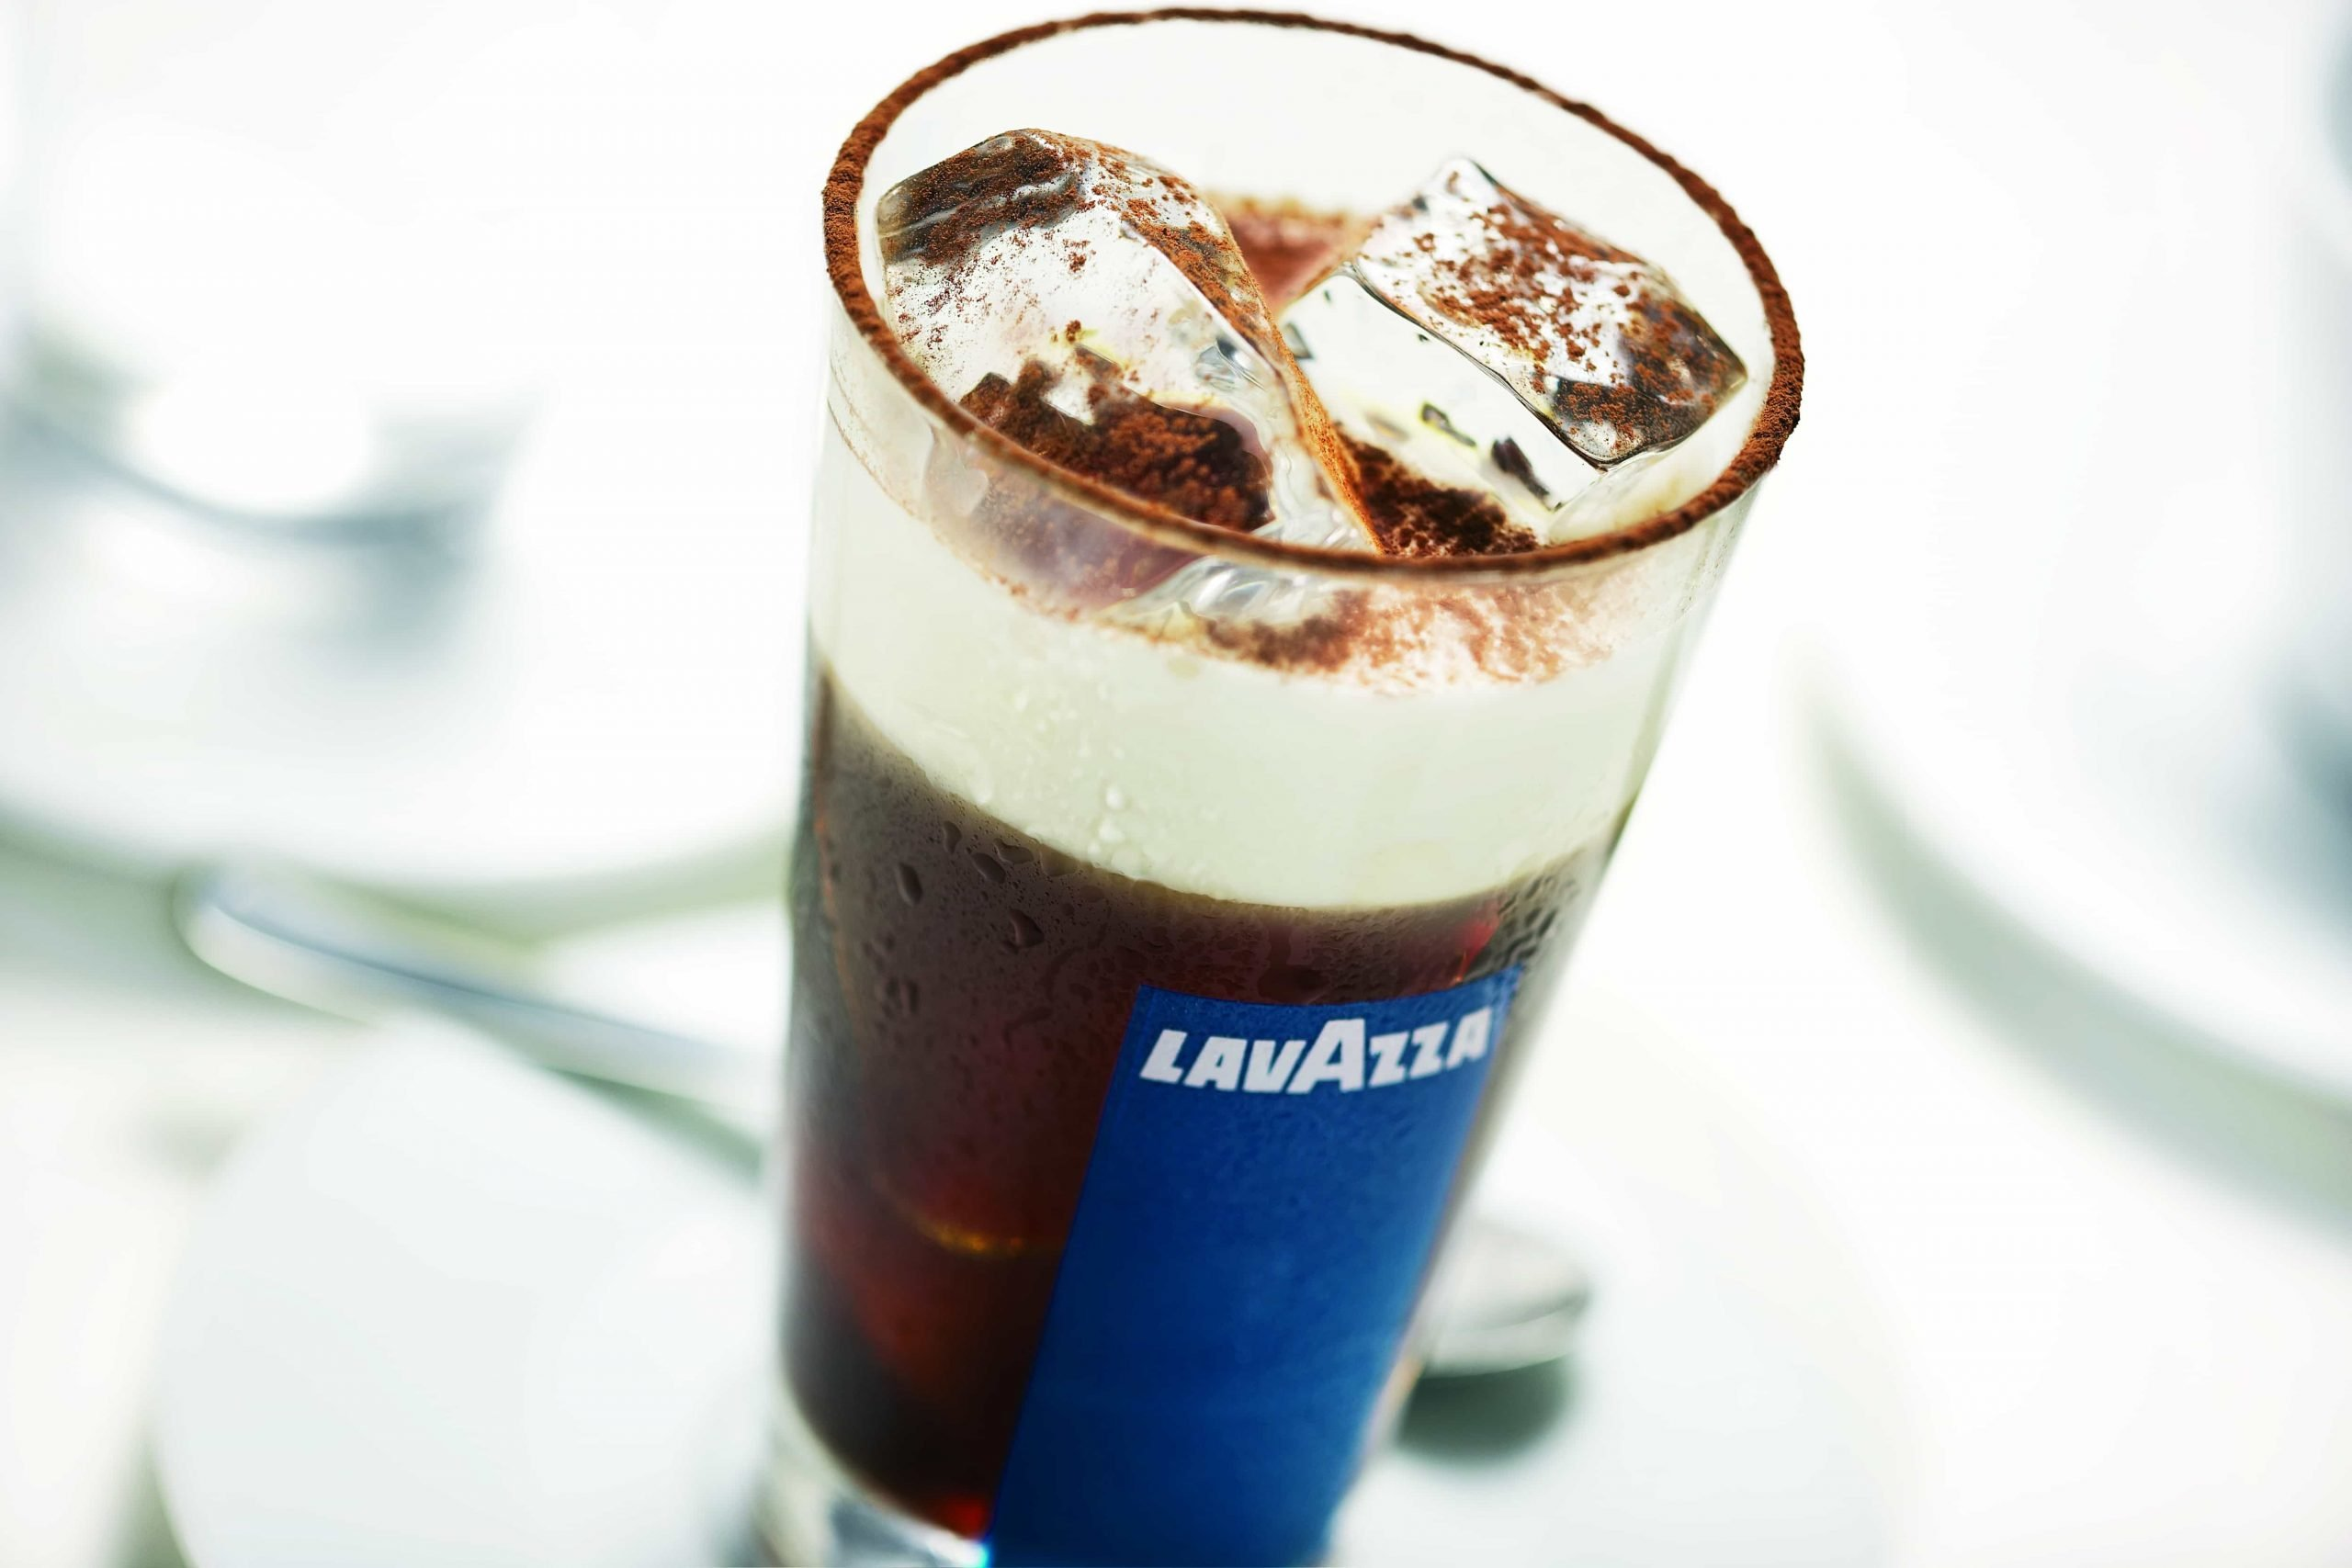 LAVAZZA Invites Coffee Lovers to Guggenheim for FREE Cold Brew on First Day of Summer